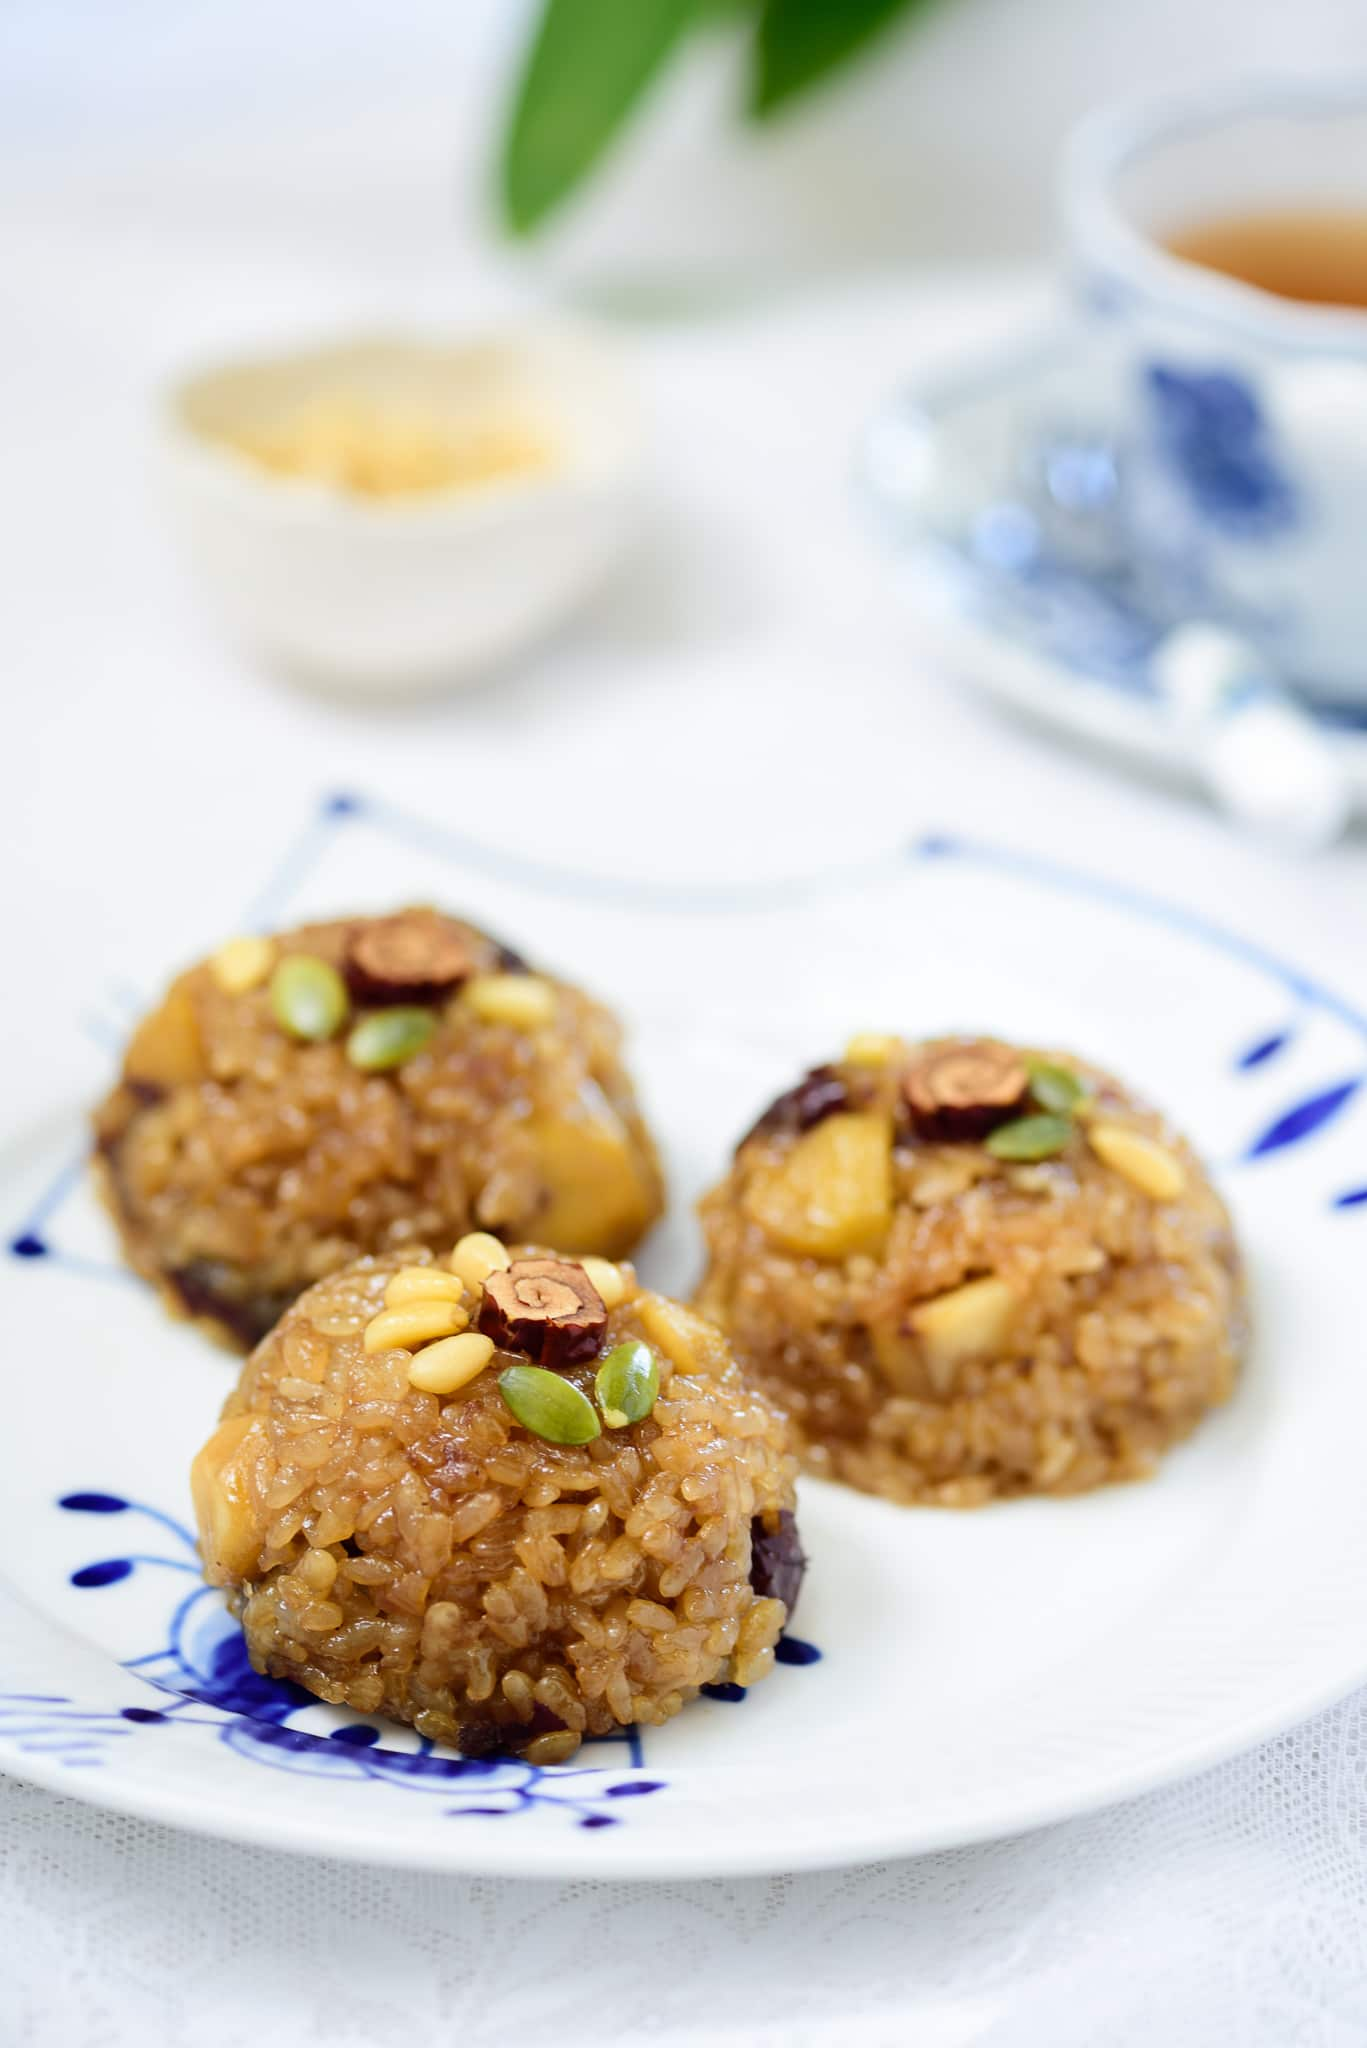 DSC4318 - Yaksik (Sweet Rice with Dried Fruits and Nuts)